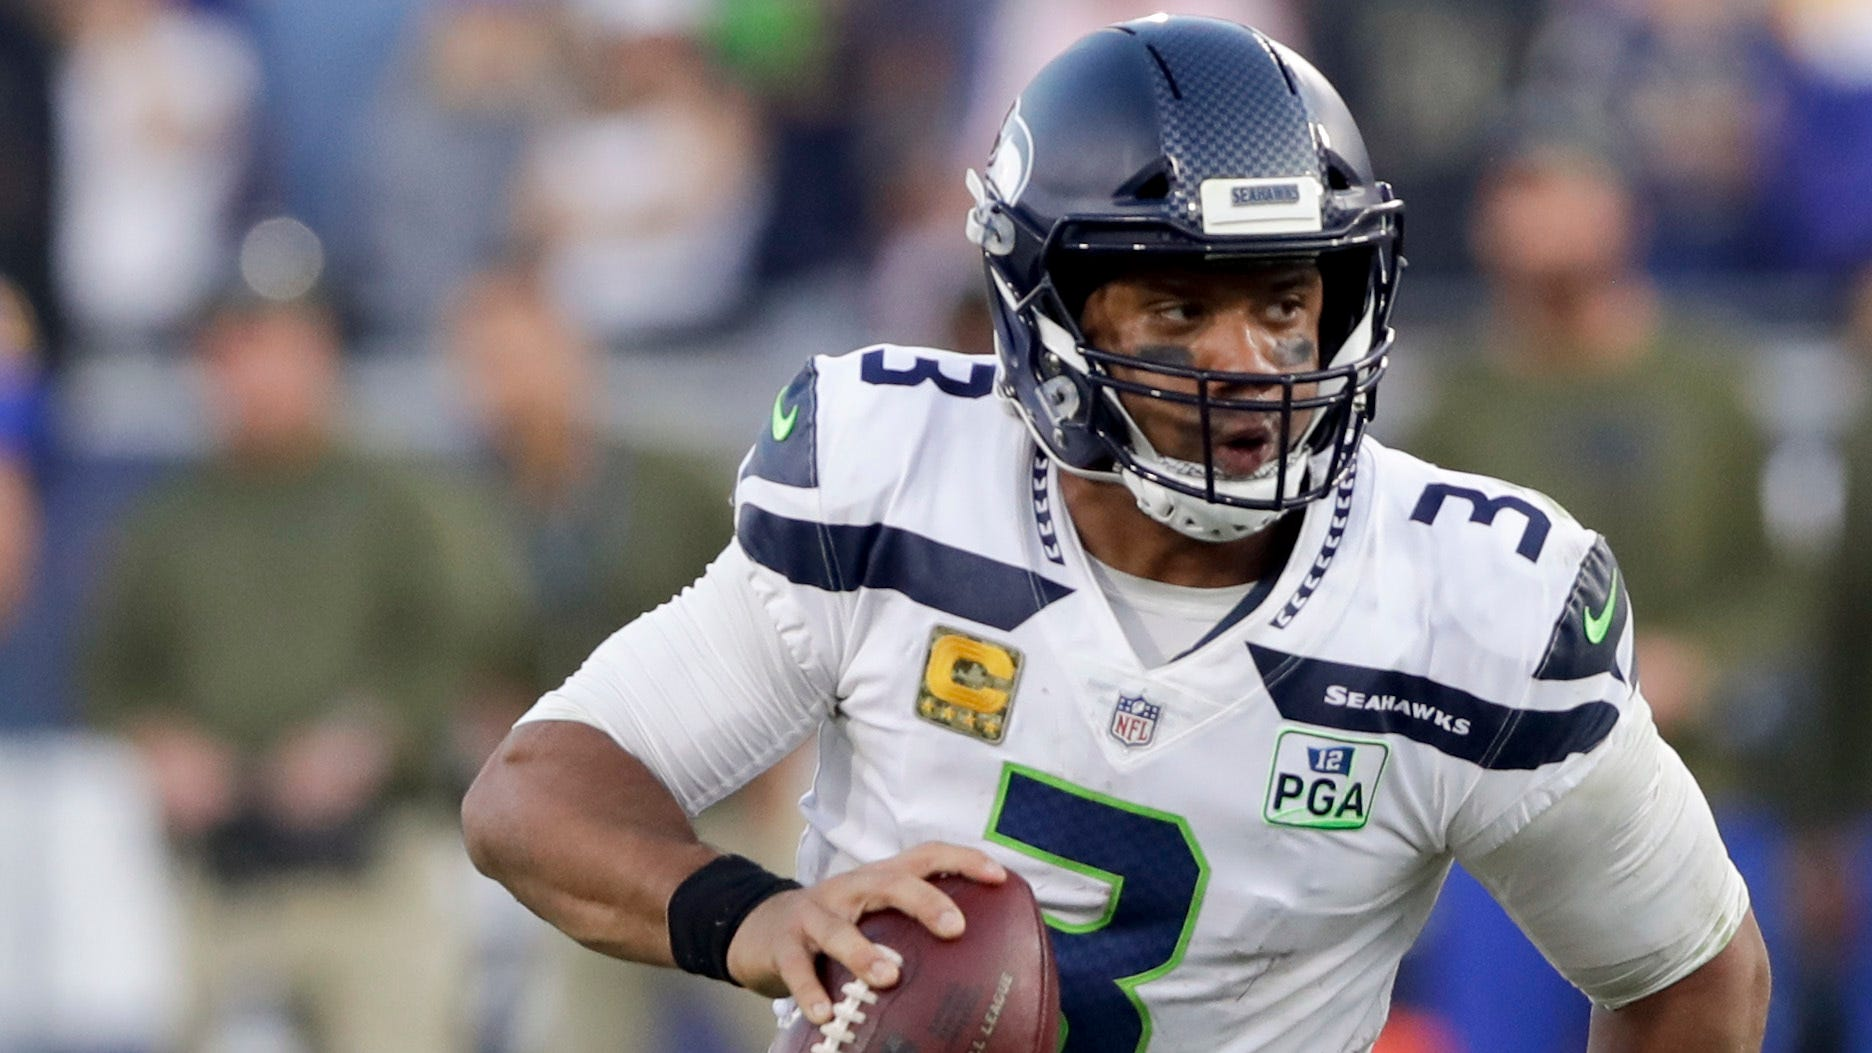 Seahawks quarterback Russell Wilson looked like his younger self on Sunday against the Rams, rushing for 90 yards.